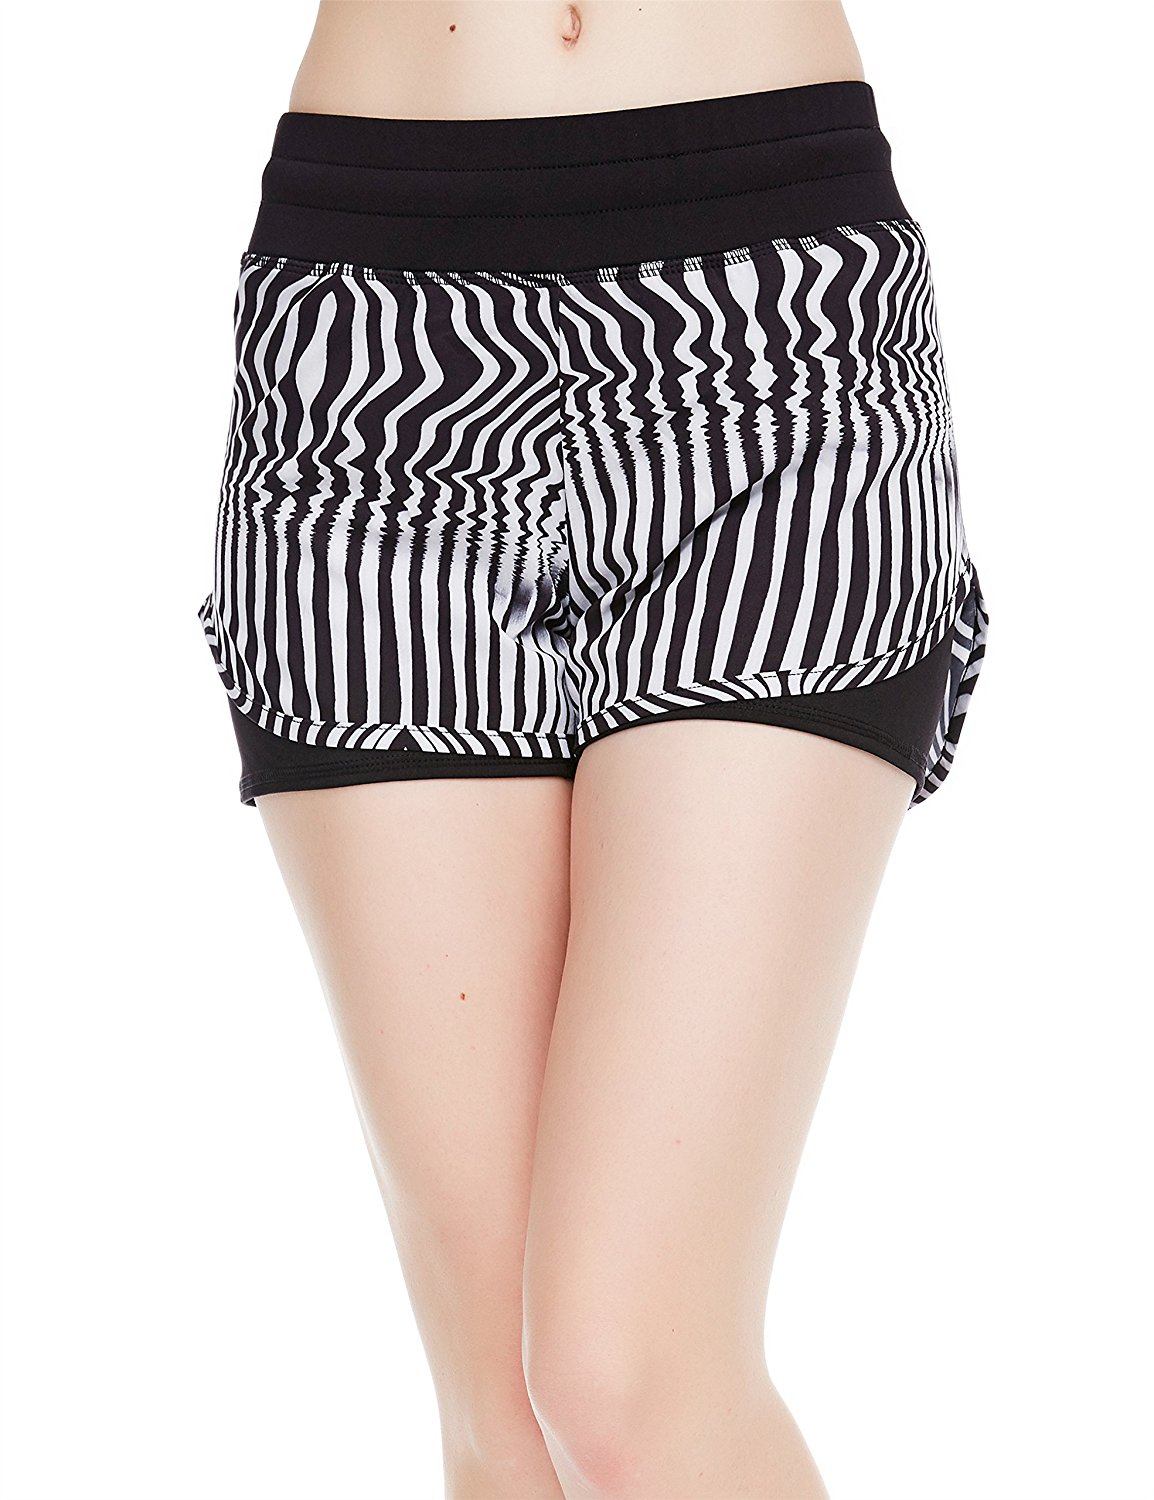 icyzone Yoga Shorts Activewear High Waisted Running Workout Drawstring Shorts for Women 2-in-1